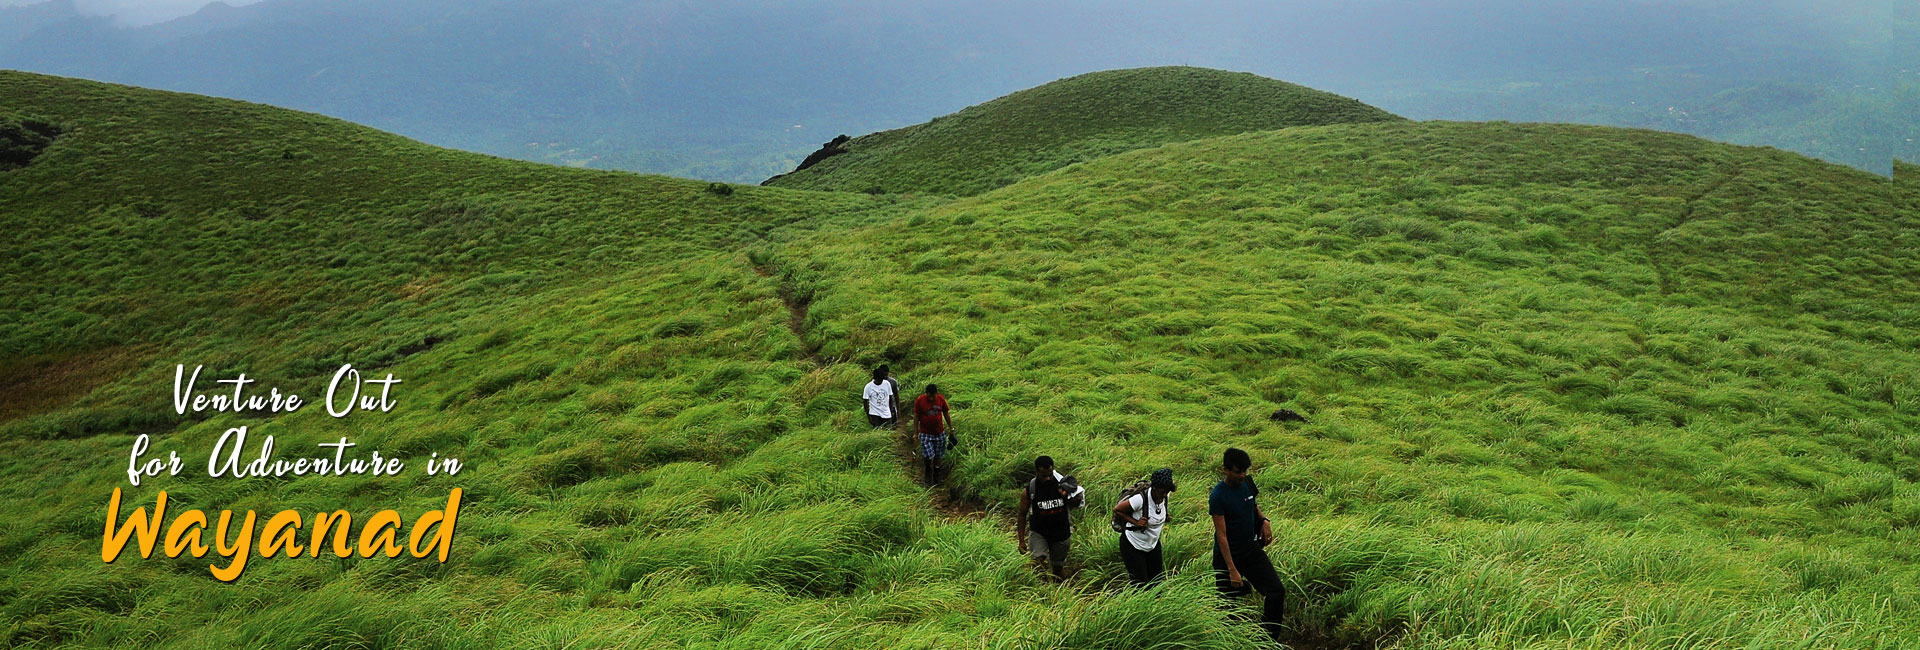 Venture Out for Adventure in Wayanad